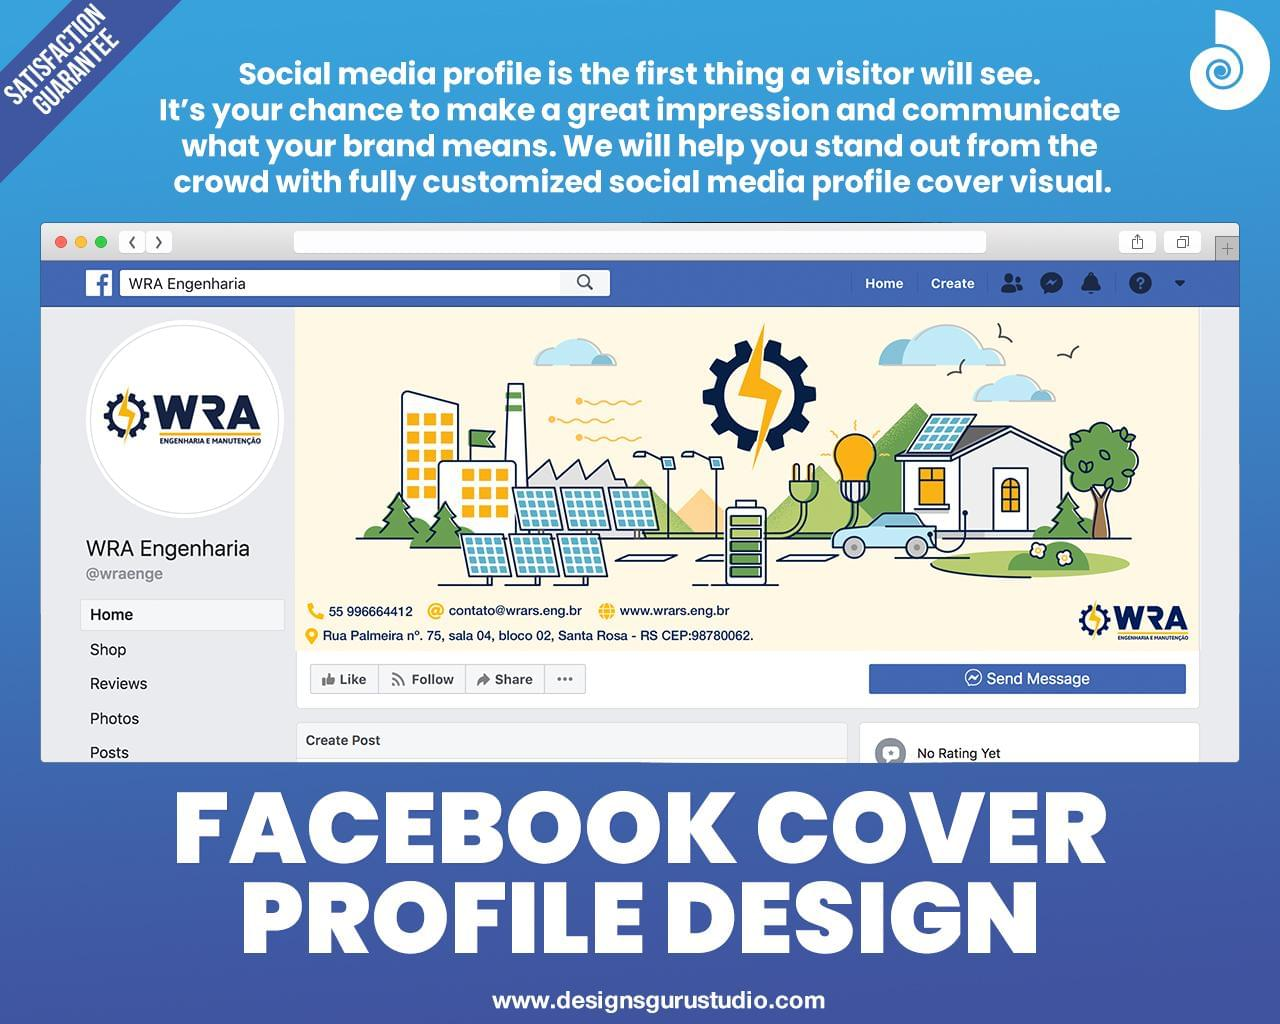 Facebook Cover Profile Design by designsgurustudio - 118892